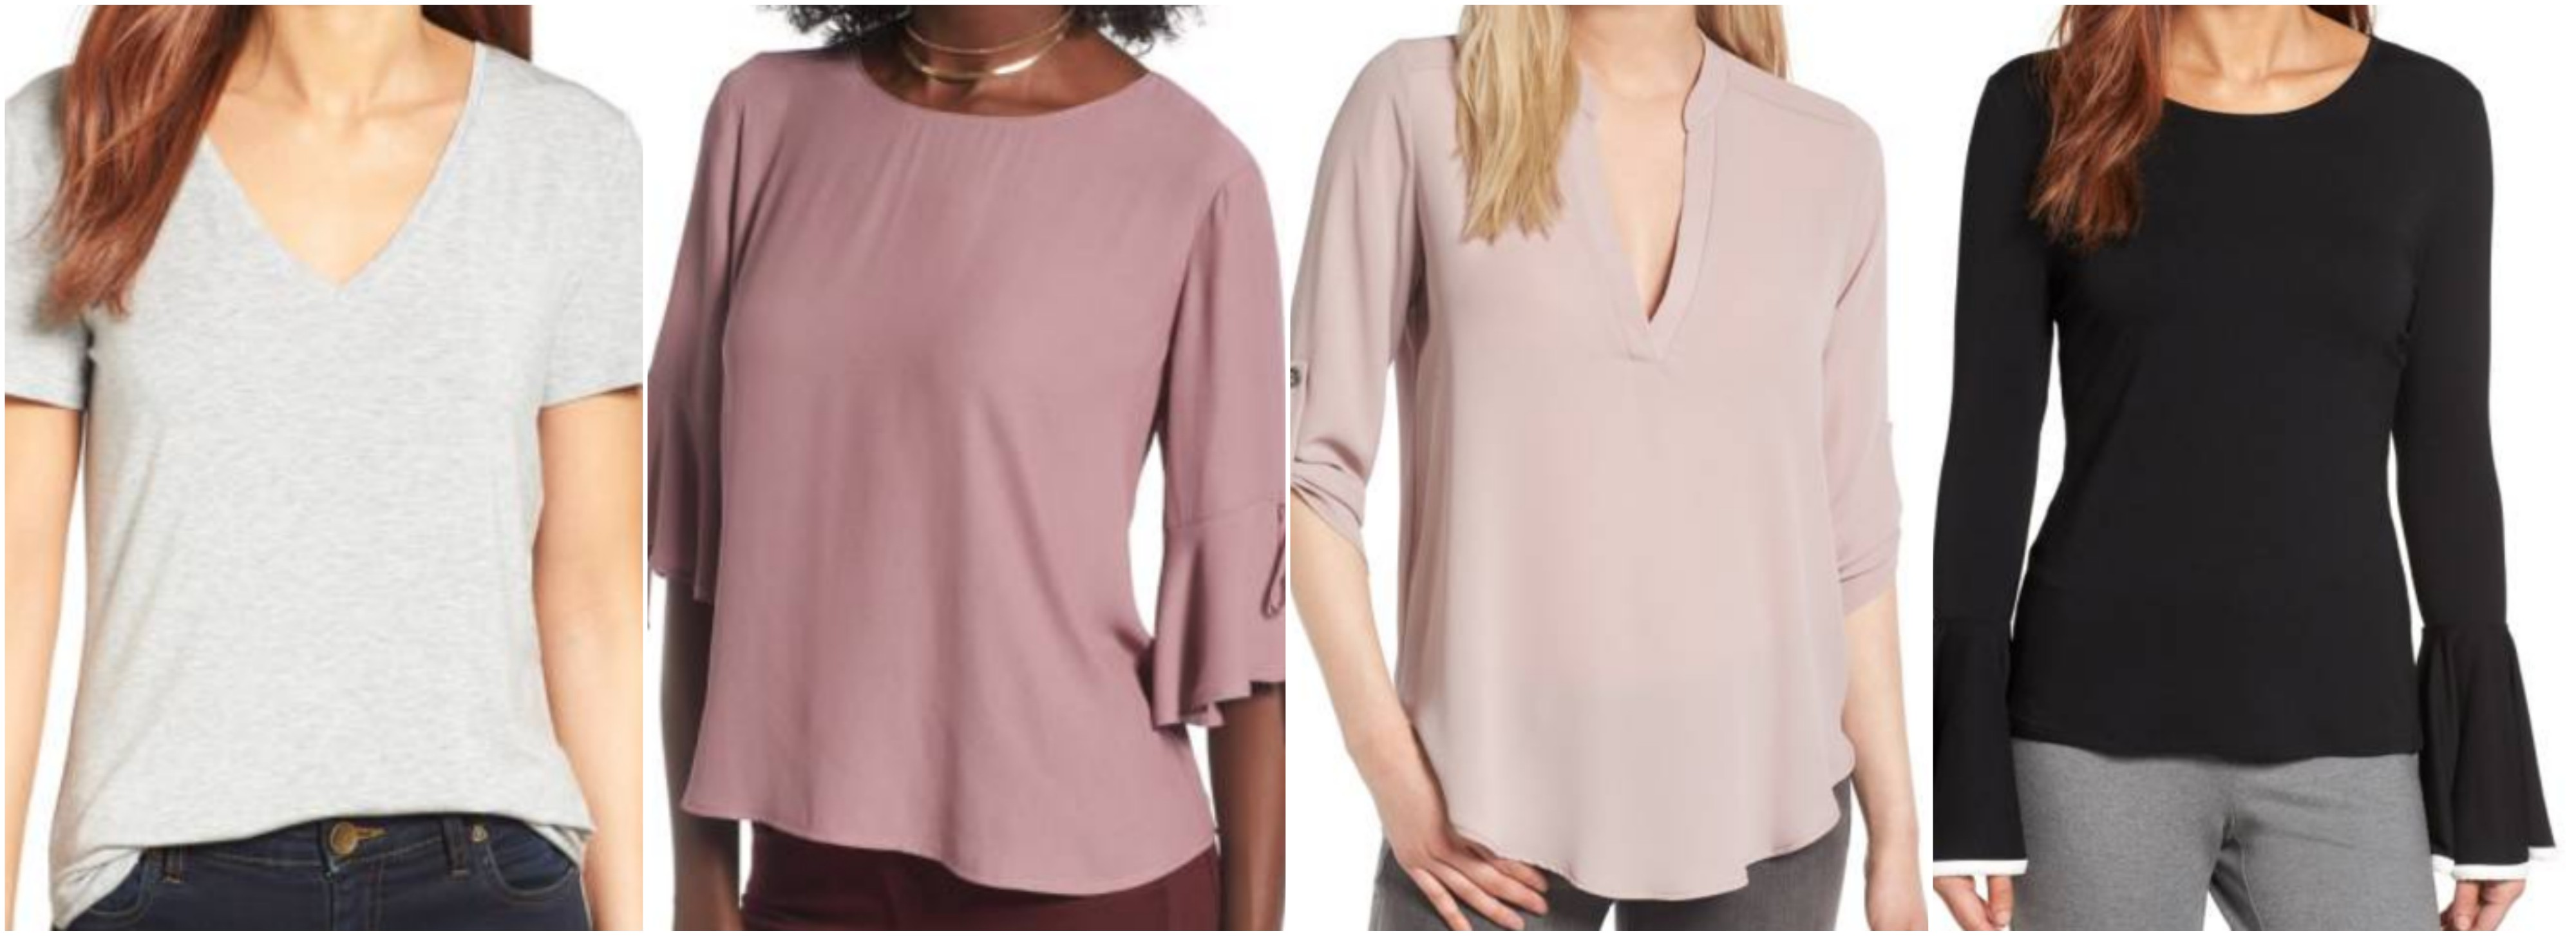 df8ea17e8567 Halogen V-Neck Tunic Tee    Lush Bell Sleeve Top · Lush Roll Tab Sleeve Top     Vince Camuto Bell Sleeve Top